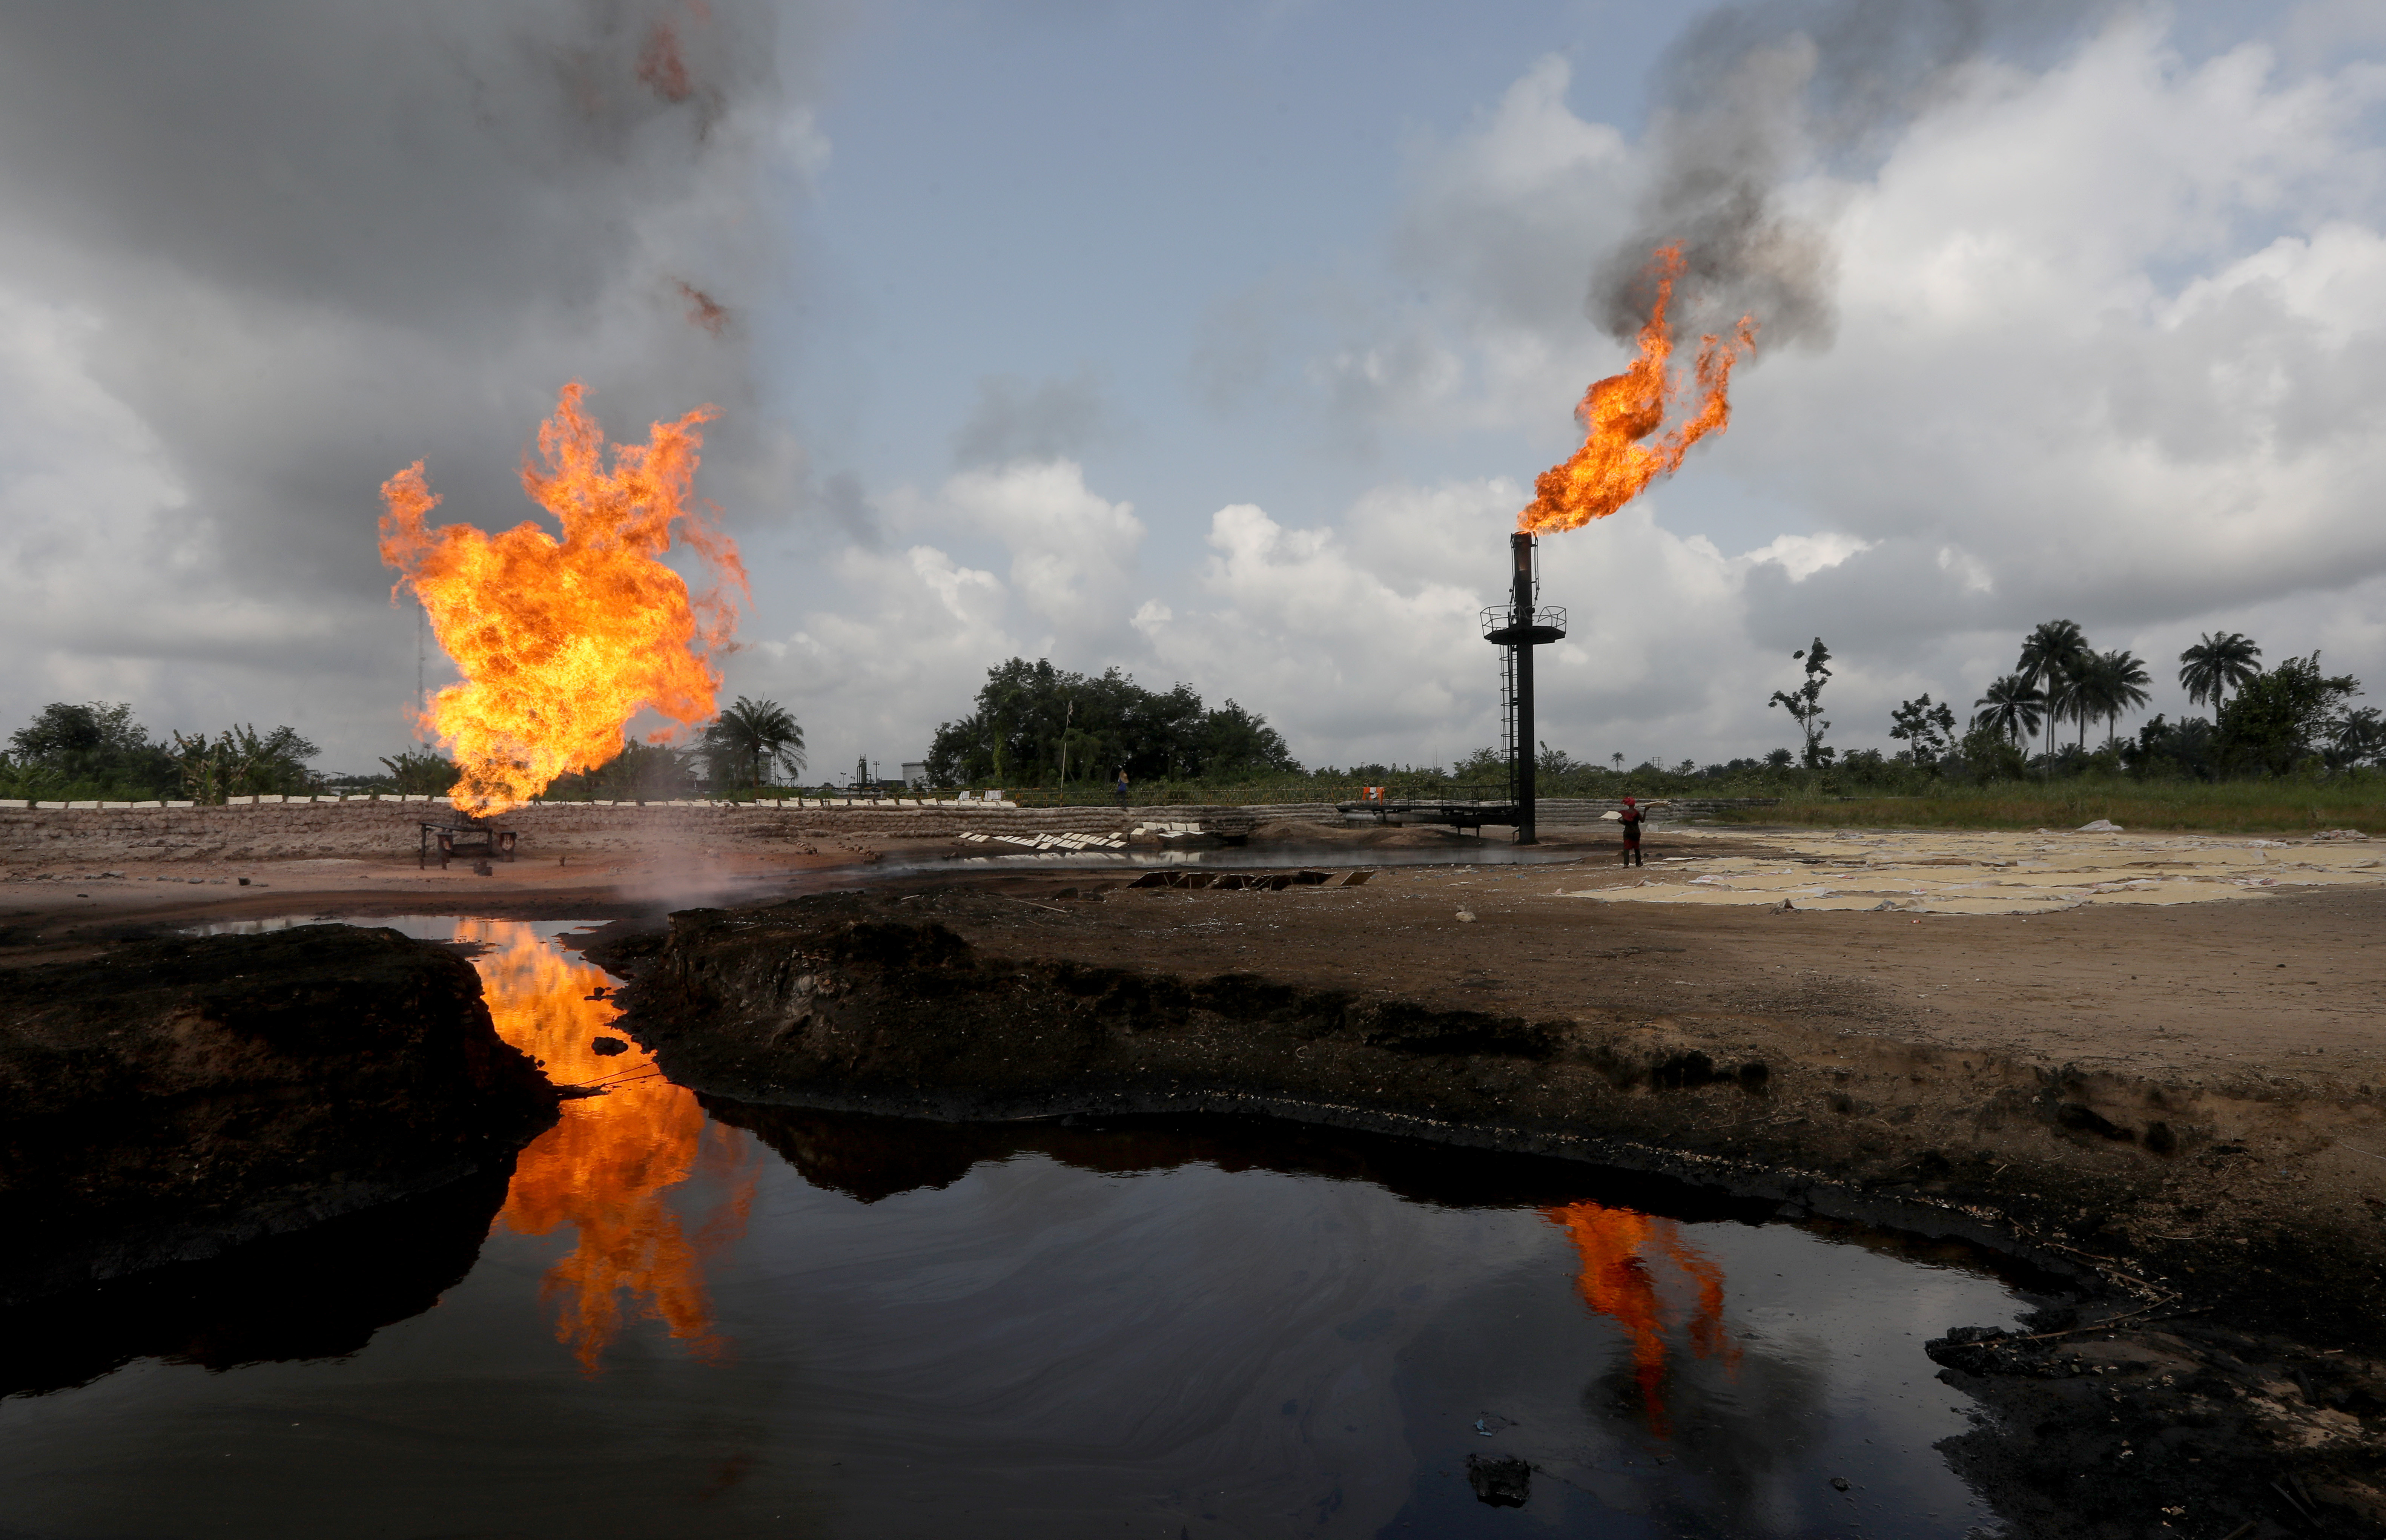 A reflection of two gas flaring furnaces is seen in the pool of oil-smeared water at a flow station in Ughelli, Delta State, Nigeria September 17, 2020. Picture taken September 17, 2020